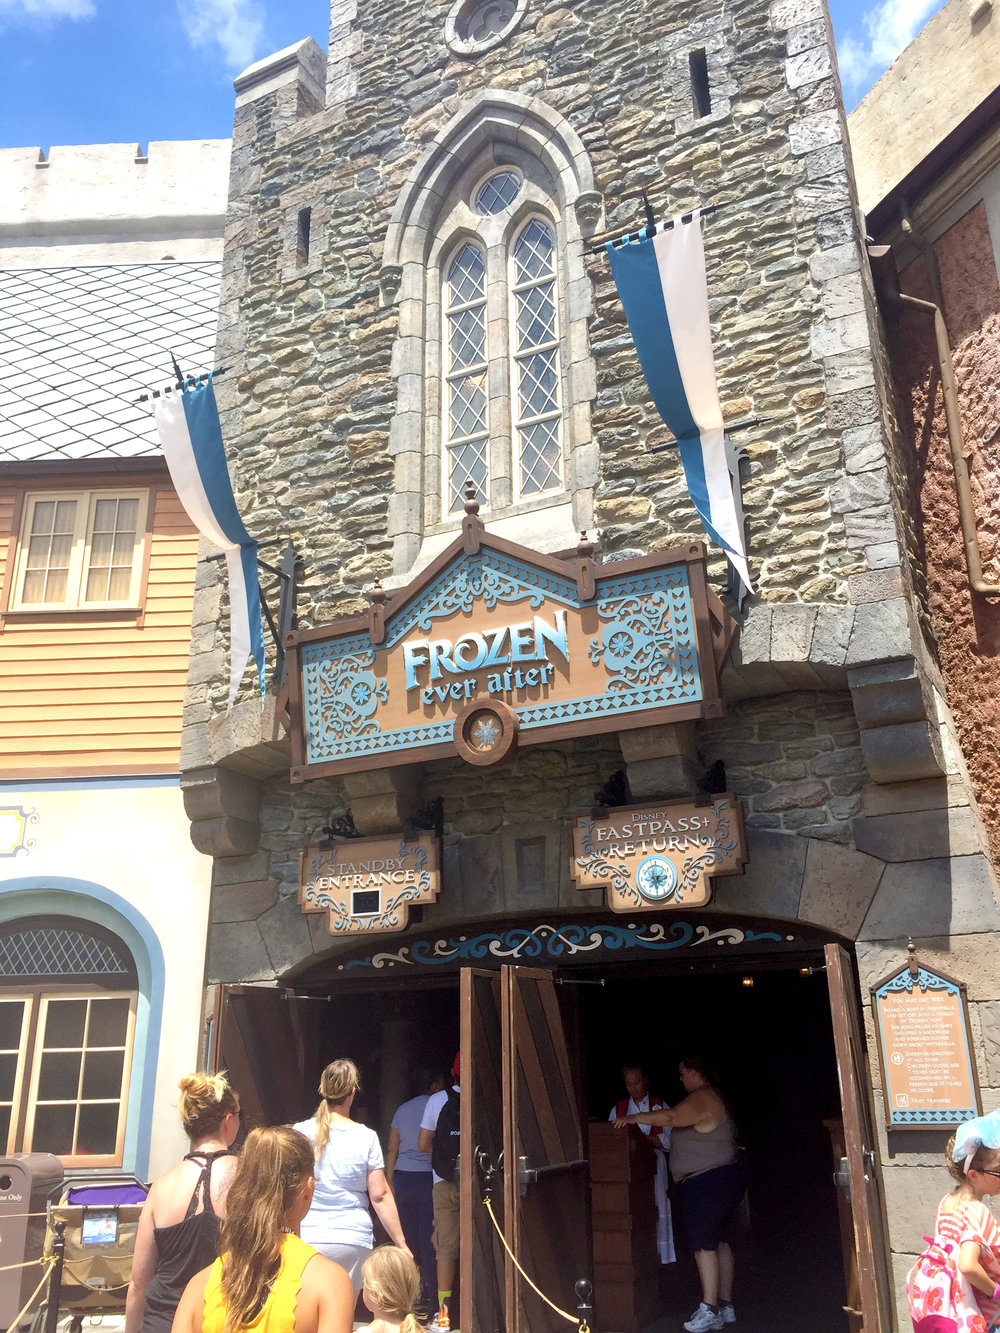 It makes sense that Frozen Ever After has the longest lines, since it is the newest attraction in Epcot.